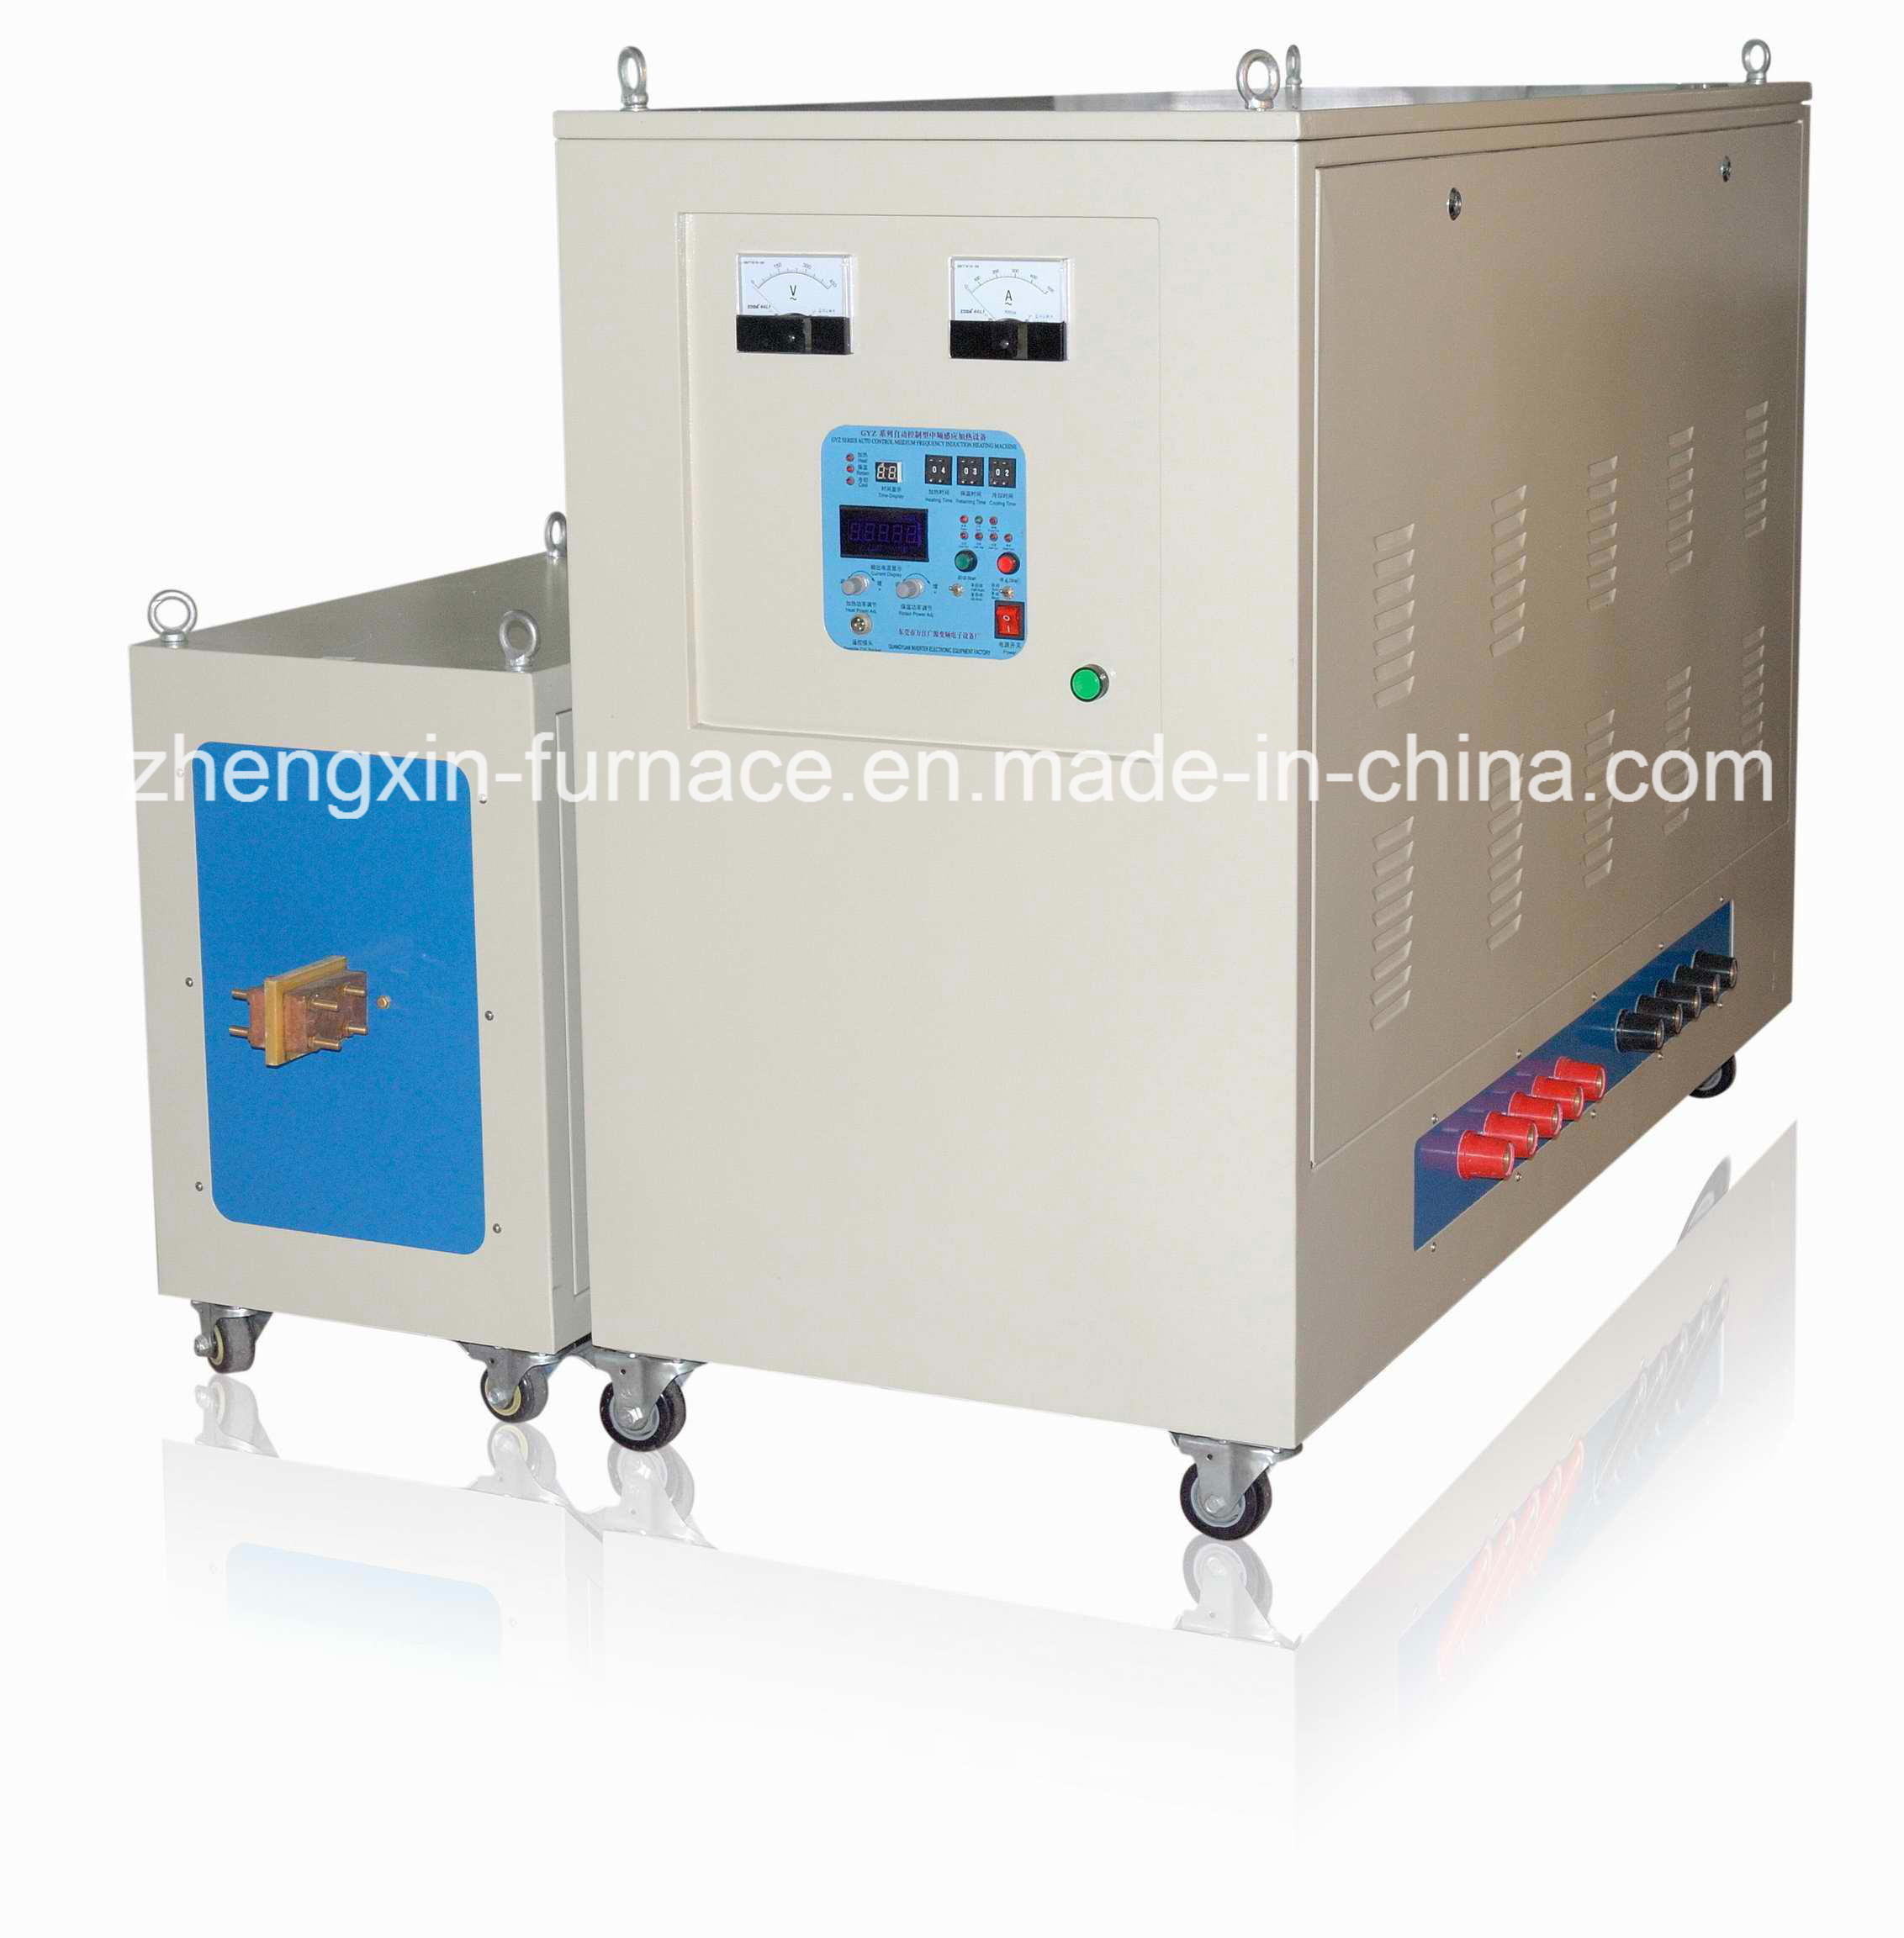 China Medium Frequency Igbt Induction Heating Machine 250kw Iii With Furnace Heater